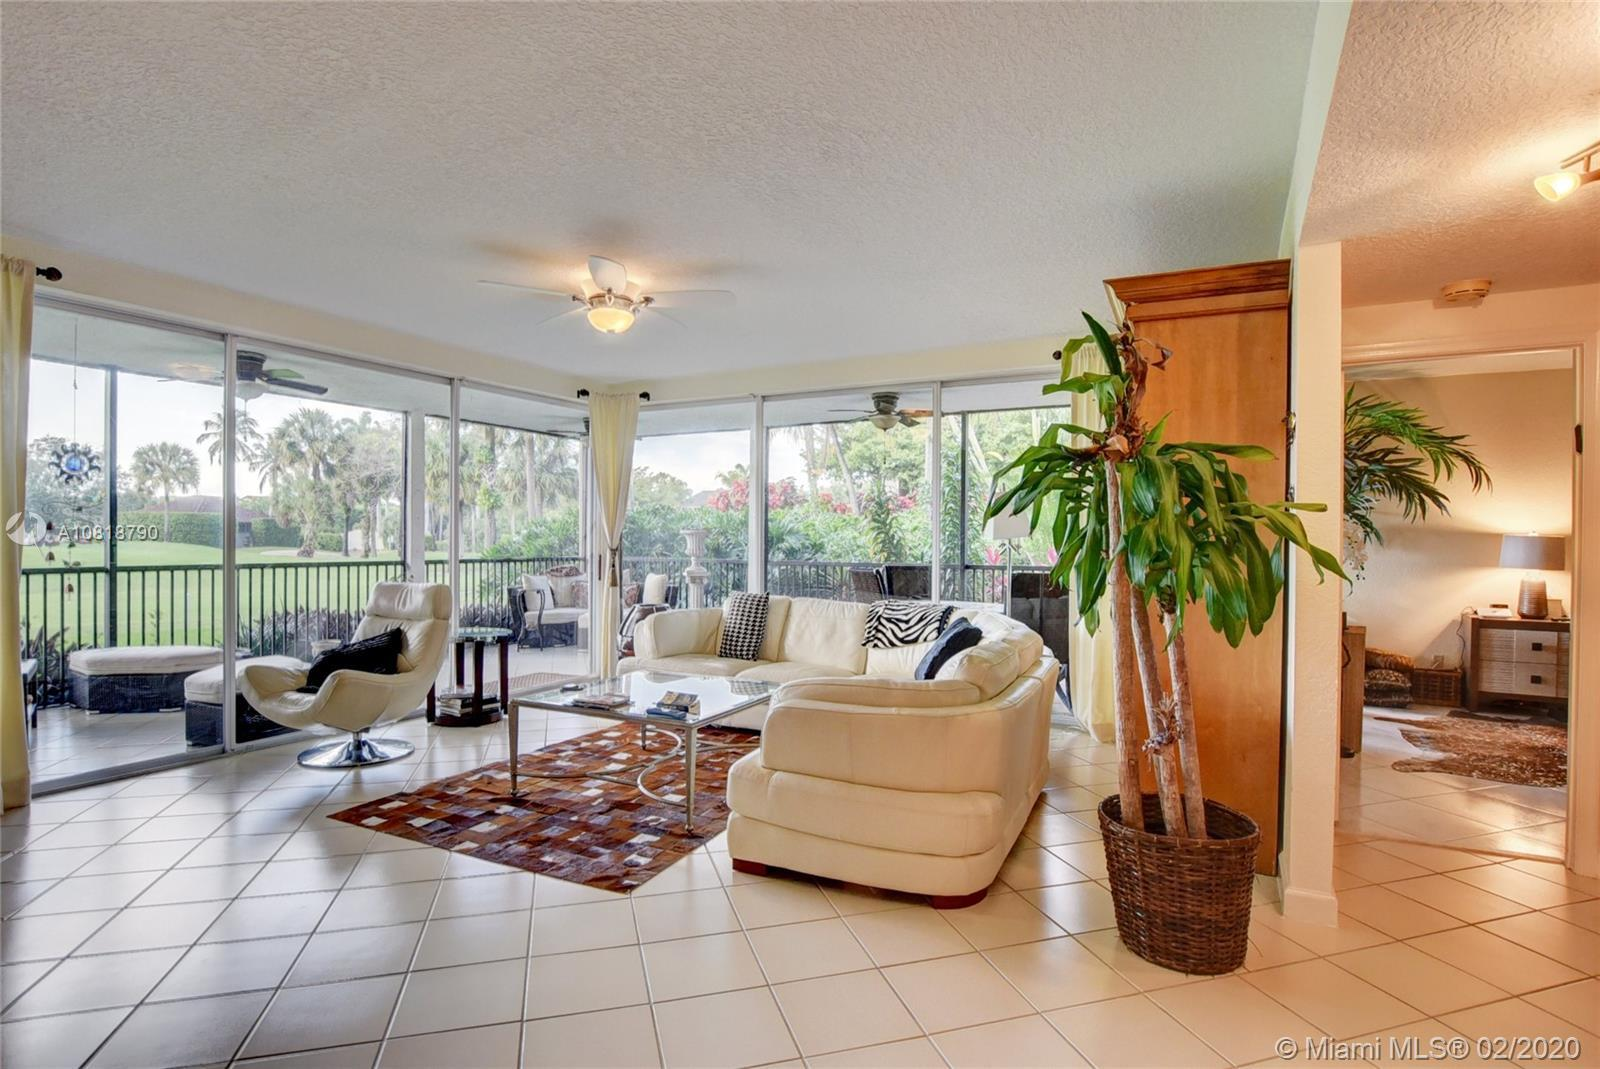 Enjoy the sunsets on the wrap around patio overlooking the golf course of this 2 bedroom, 2 bath fir